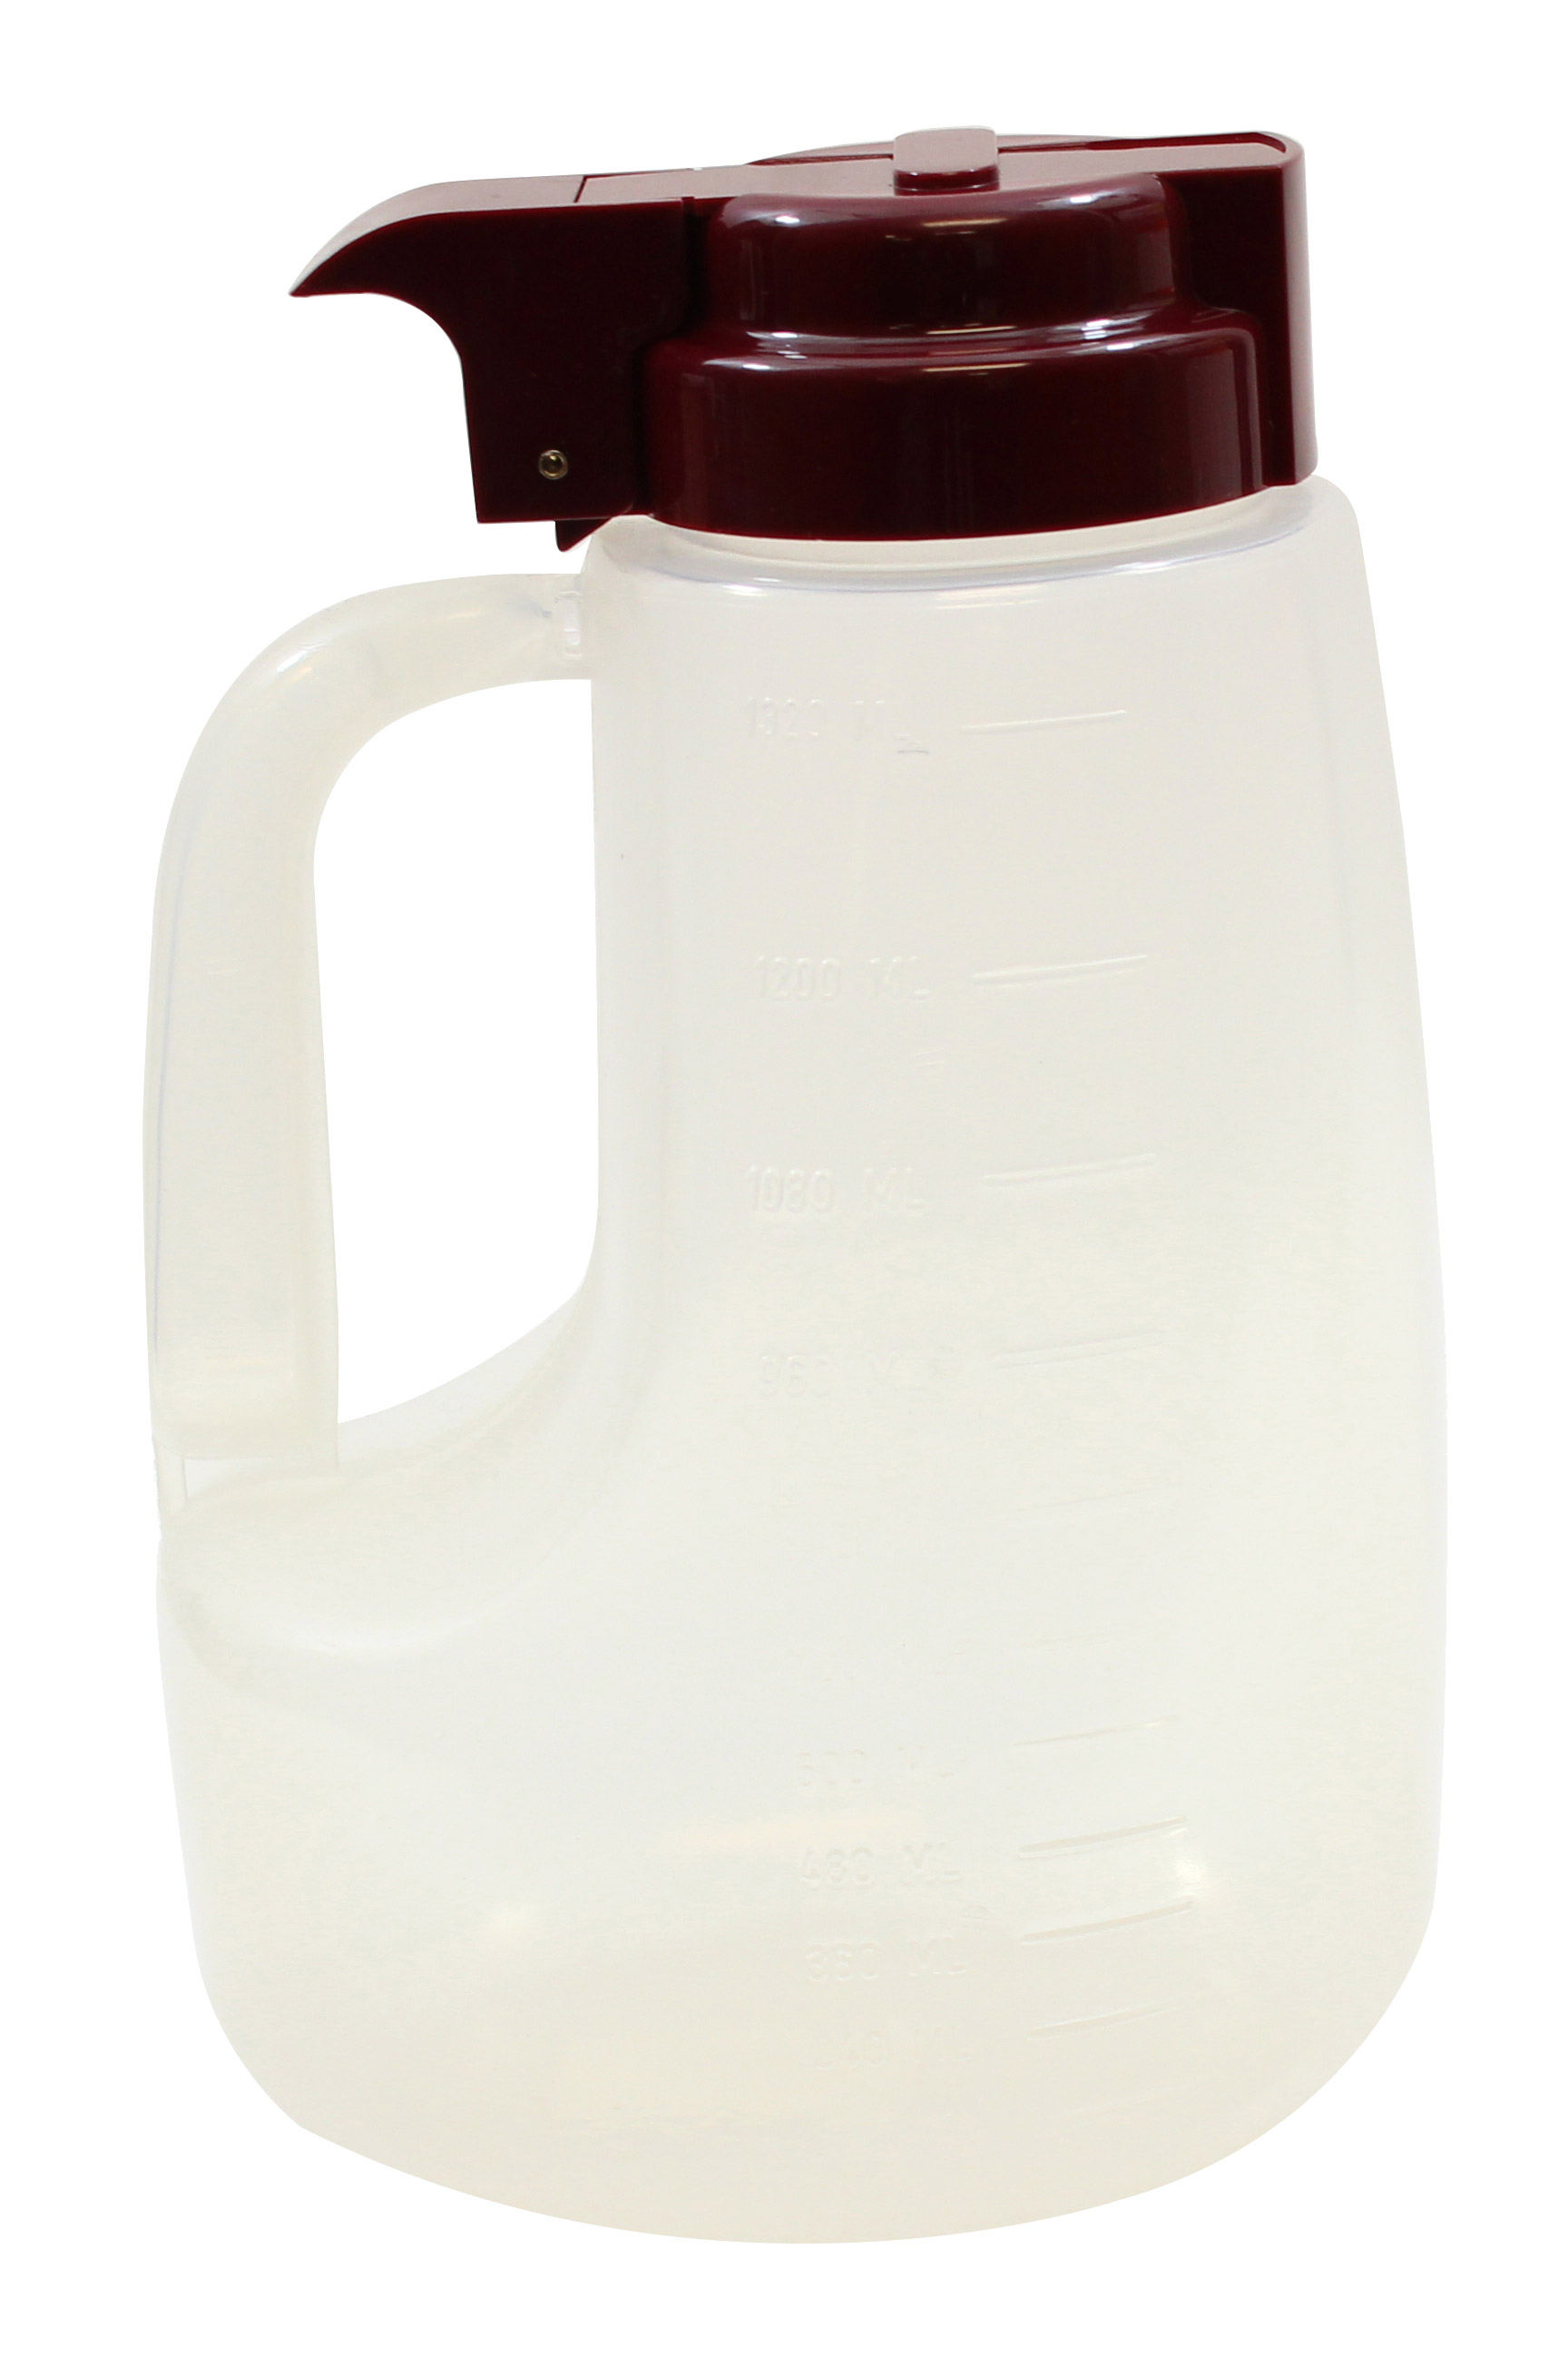 TableCraft Products PP48M syrup pourer